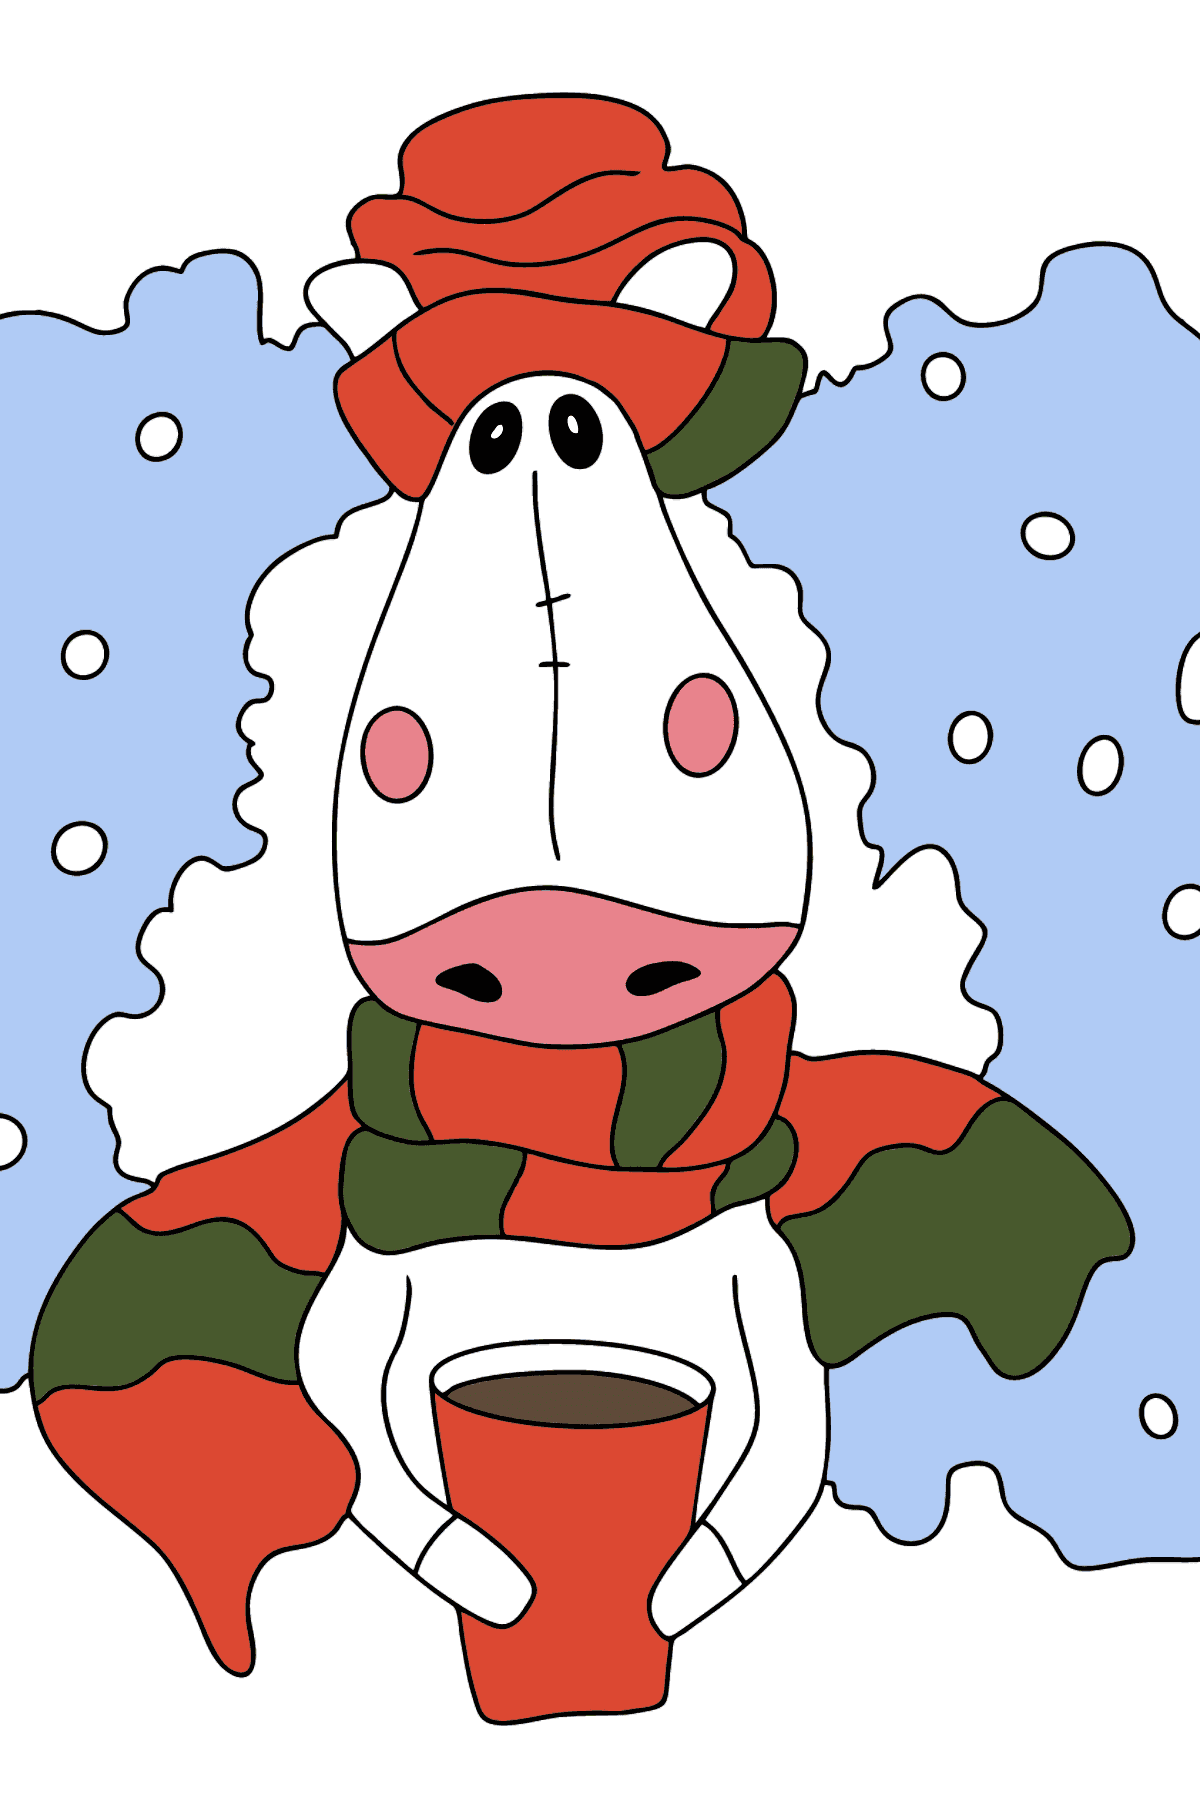 Coloring page a horse in a scarf - Coloring Pages for Kids